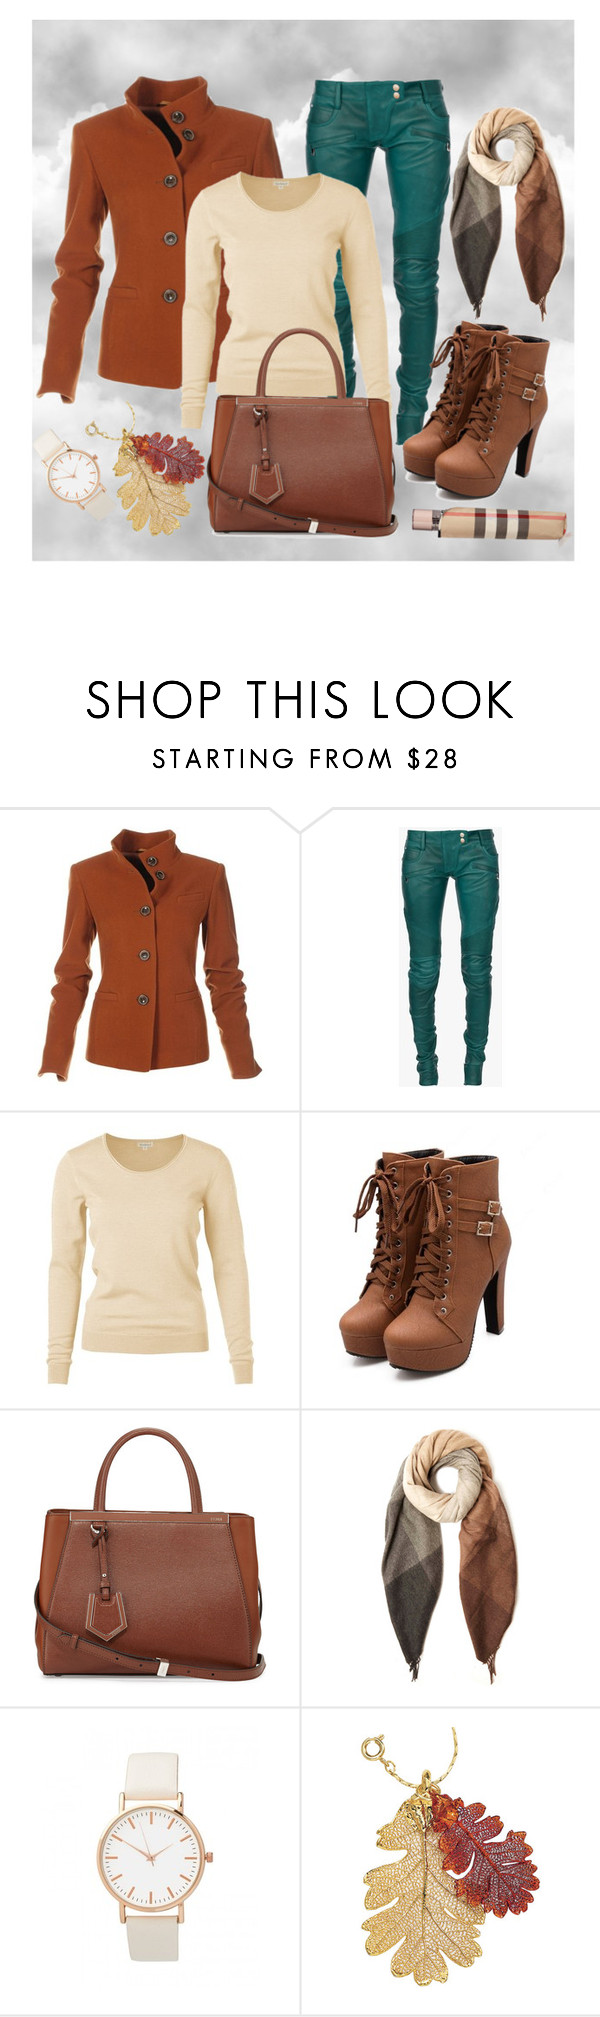 """""""November"""" by ina-kis ❤ liked on Polyvore featuring Balmain, Fendi, Paul Smith, Natures Jewelry, Burberry, GREEN, grey, brown, beige and falloutfit"""